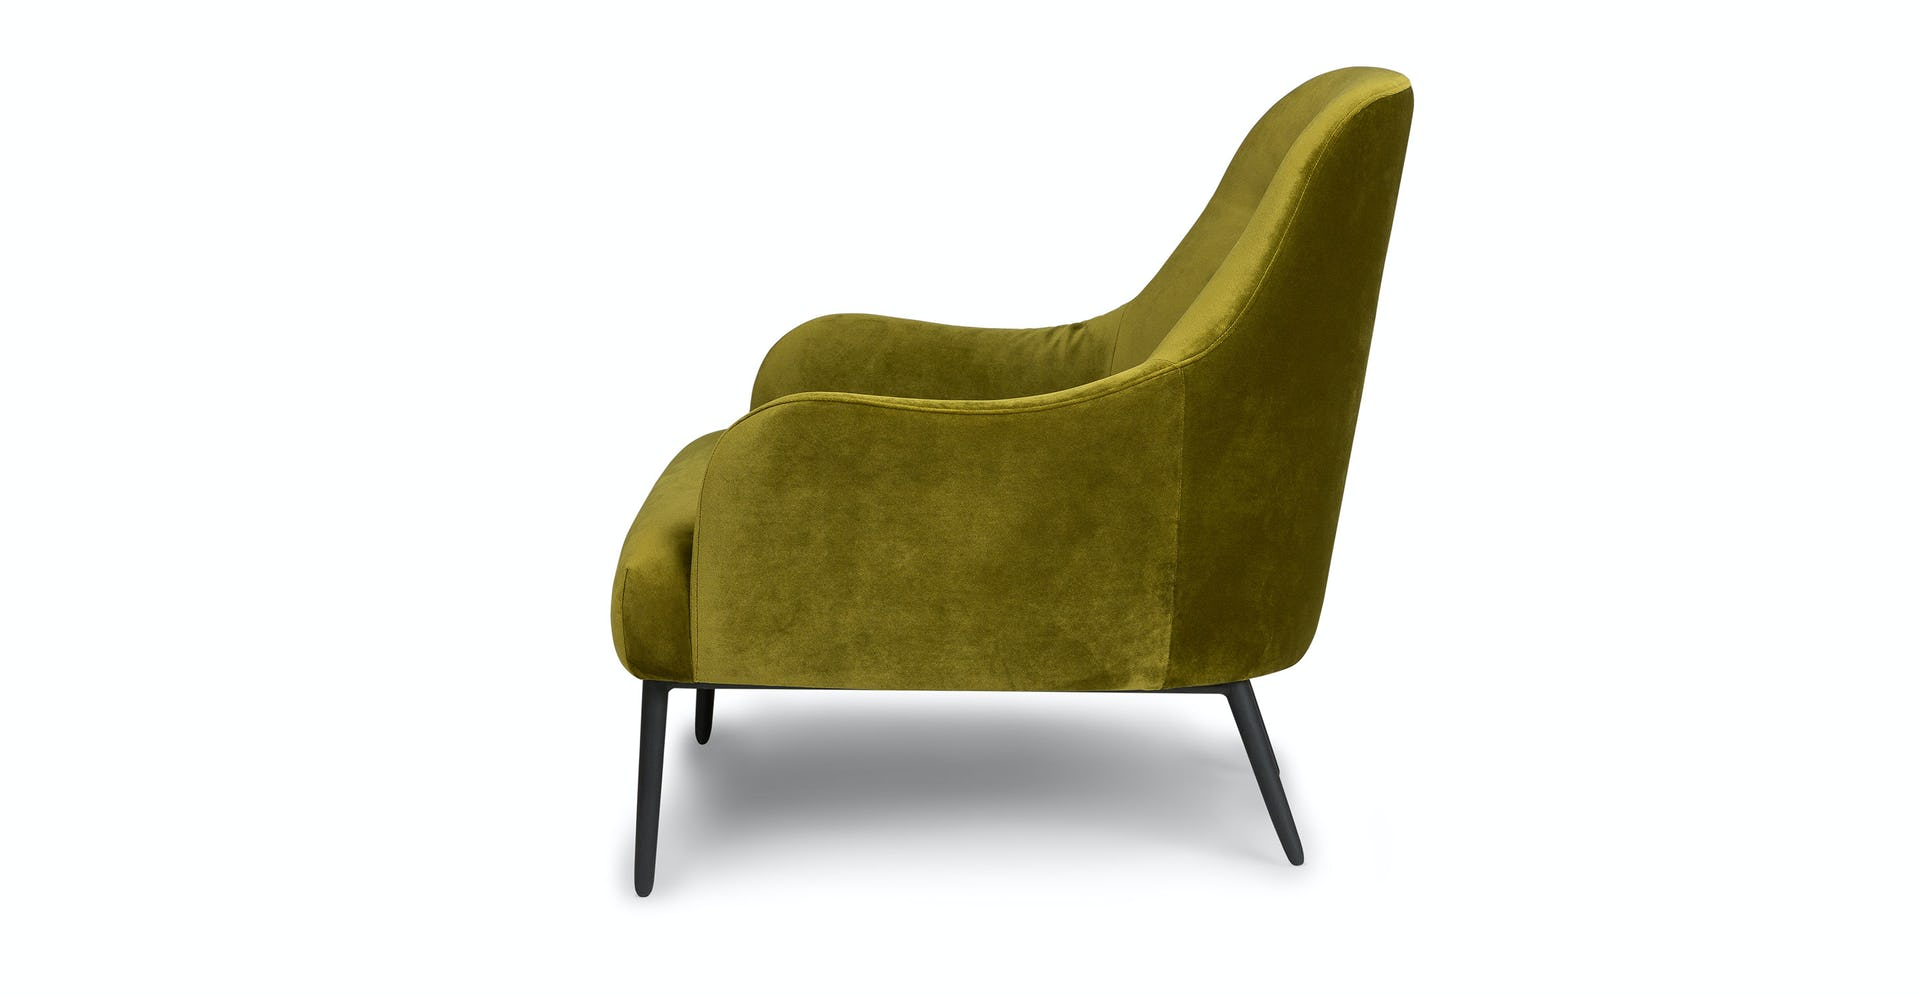 Phenomenal Moss Green Embrace Velvet Lounge Chair Article Gamerscity Chair Design For Home Gamerscityorg